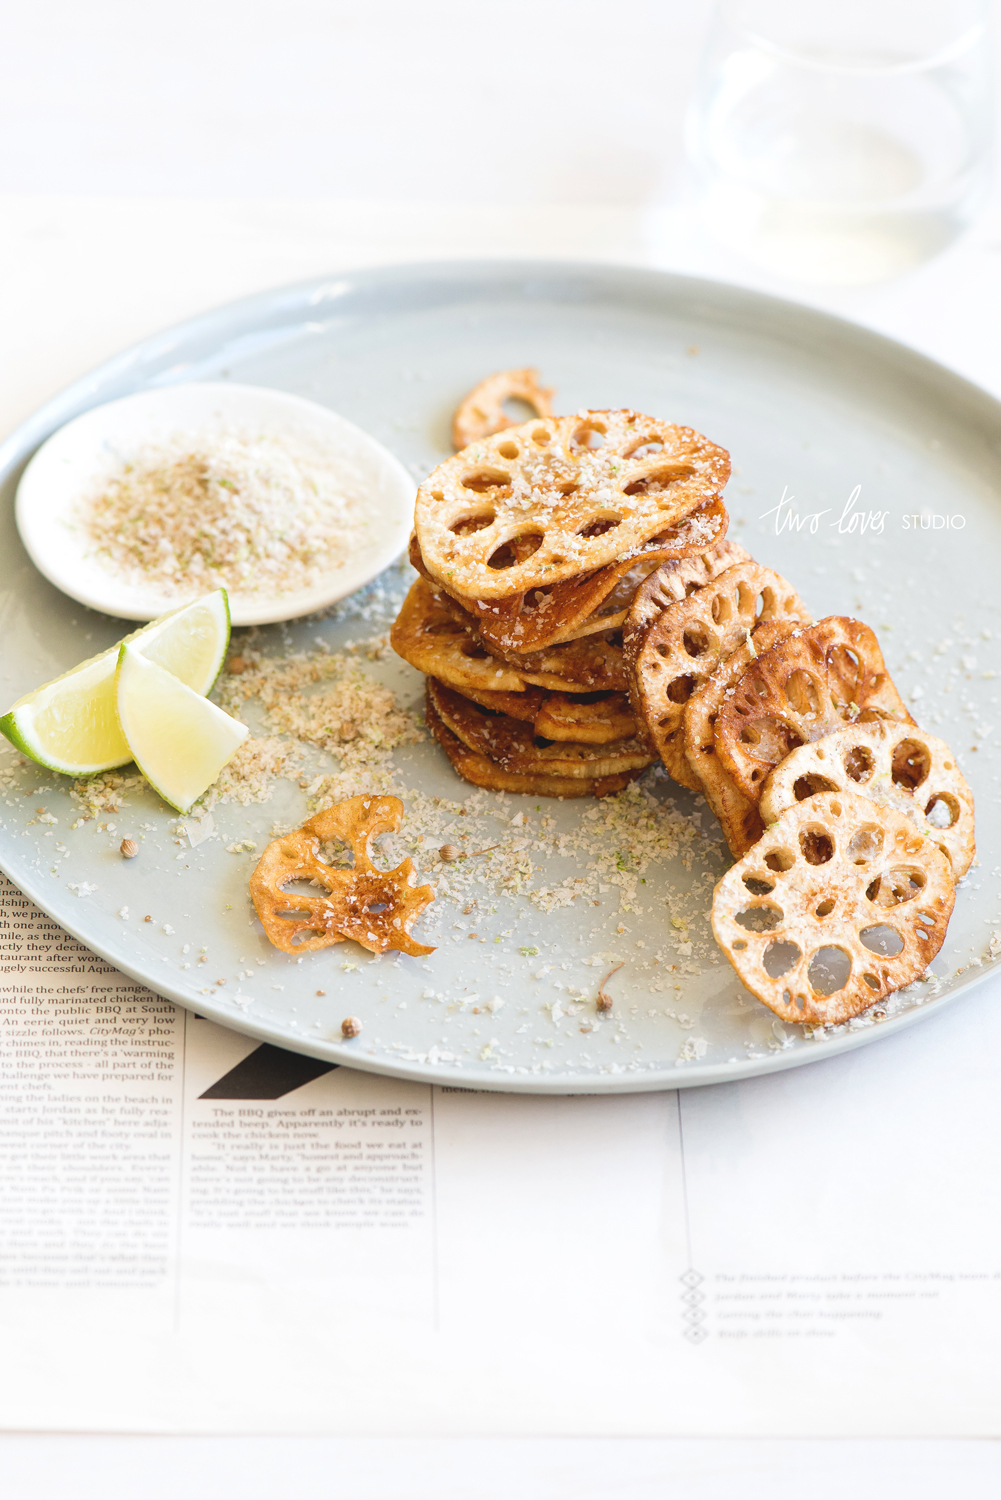 two-loves-studio-five-spiced-salt-pepper-chicken-lotus-root-chips2w